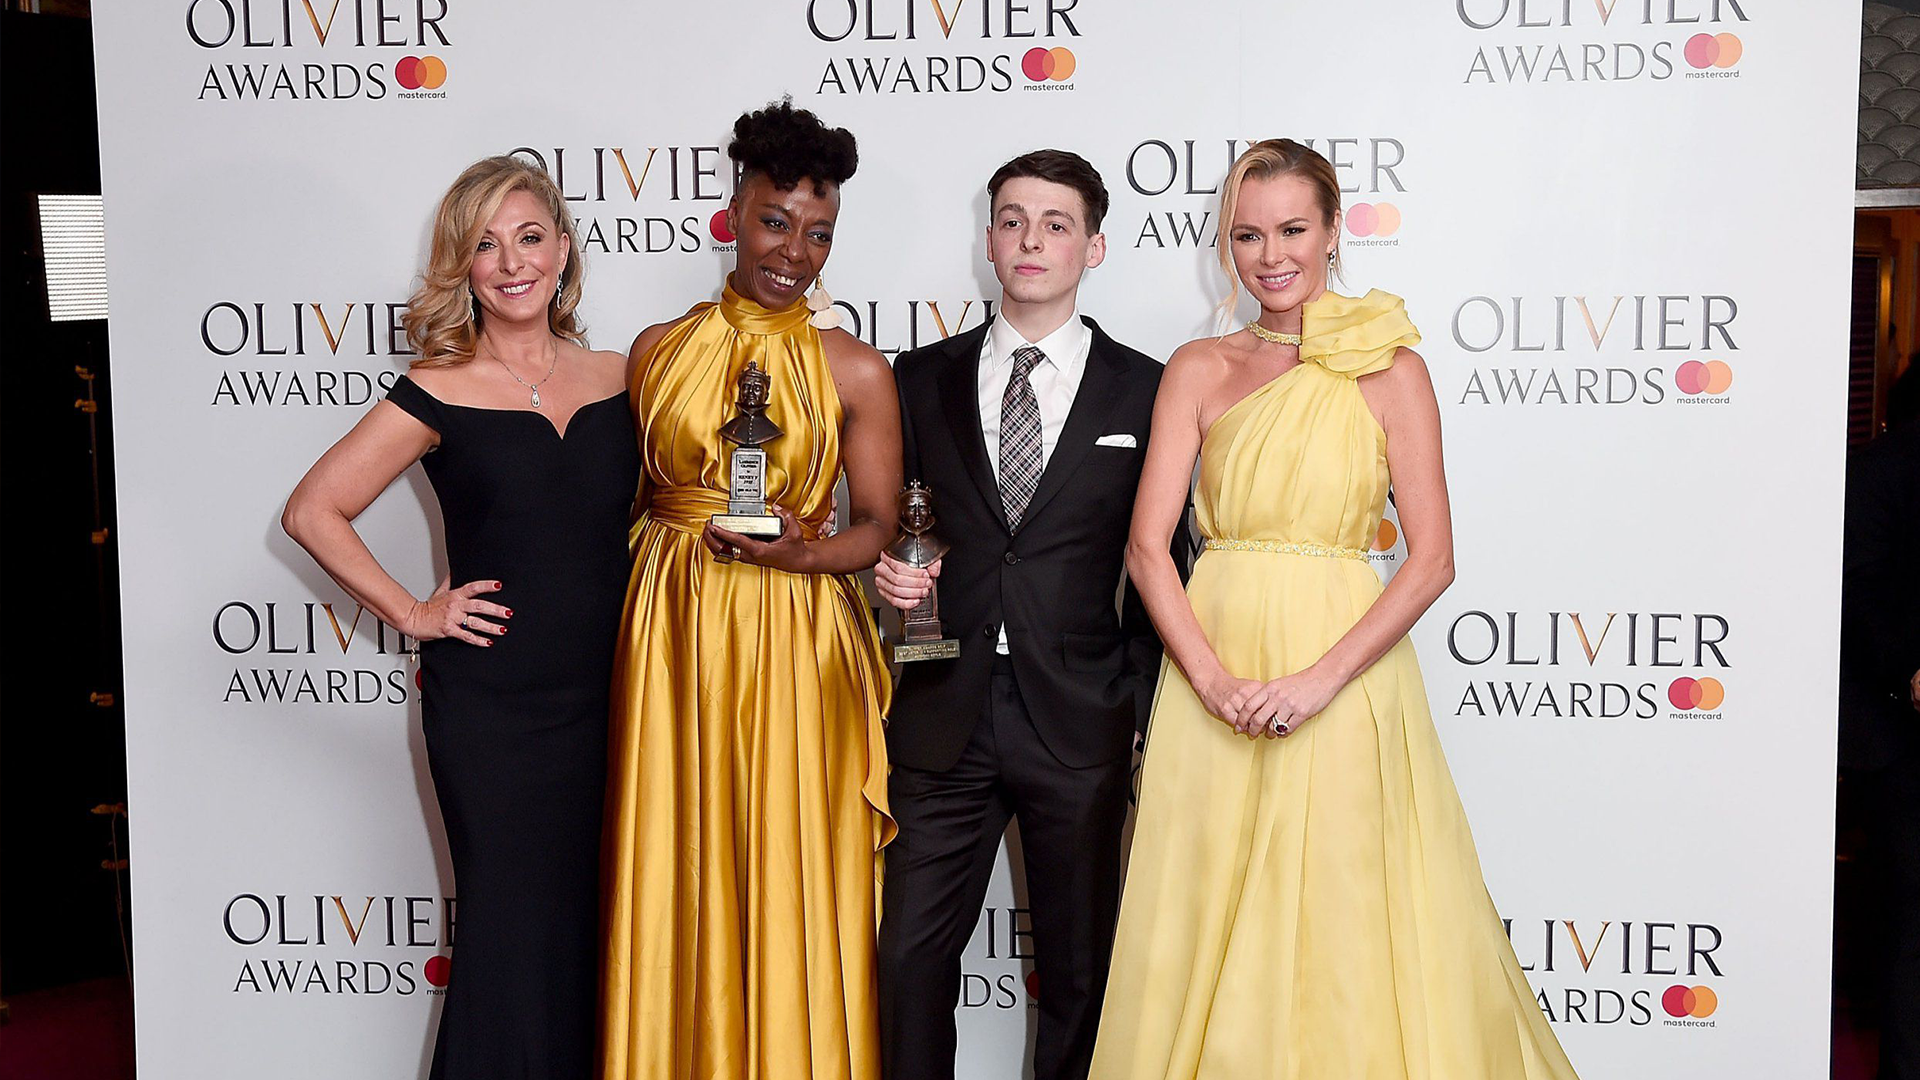 The Olivier Awards Awards